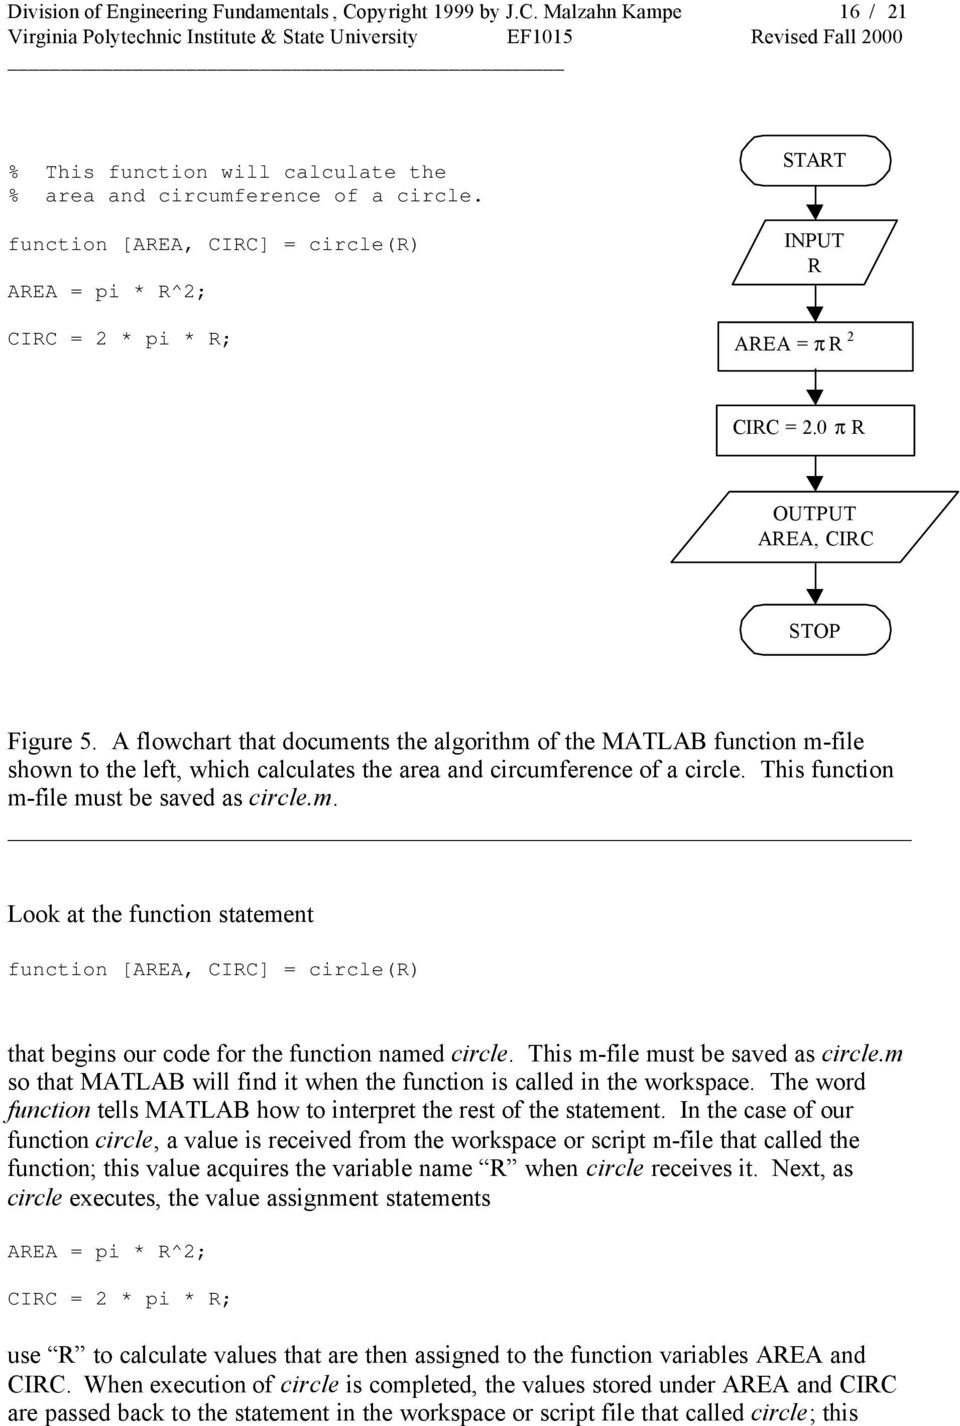 A flowchart that documents the algorithm of the MATLAB function m-file shown to the left, which calculates the area and circumference of a circle. This function m-file must be saved as circle.m. Look at the function statement function [AREA, CIRC] = circle(r) that begins our code for the function named circle.